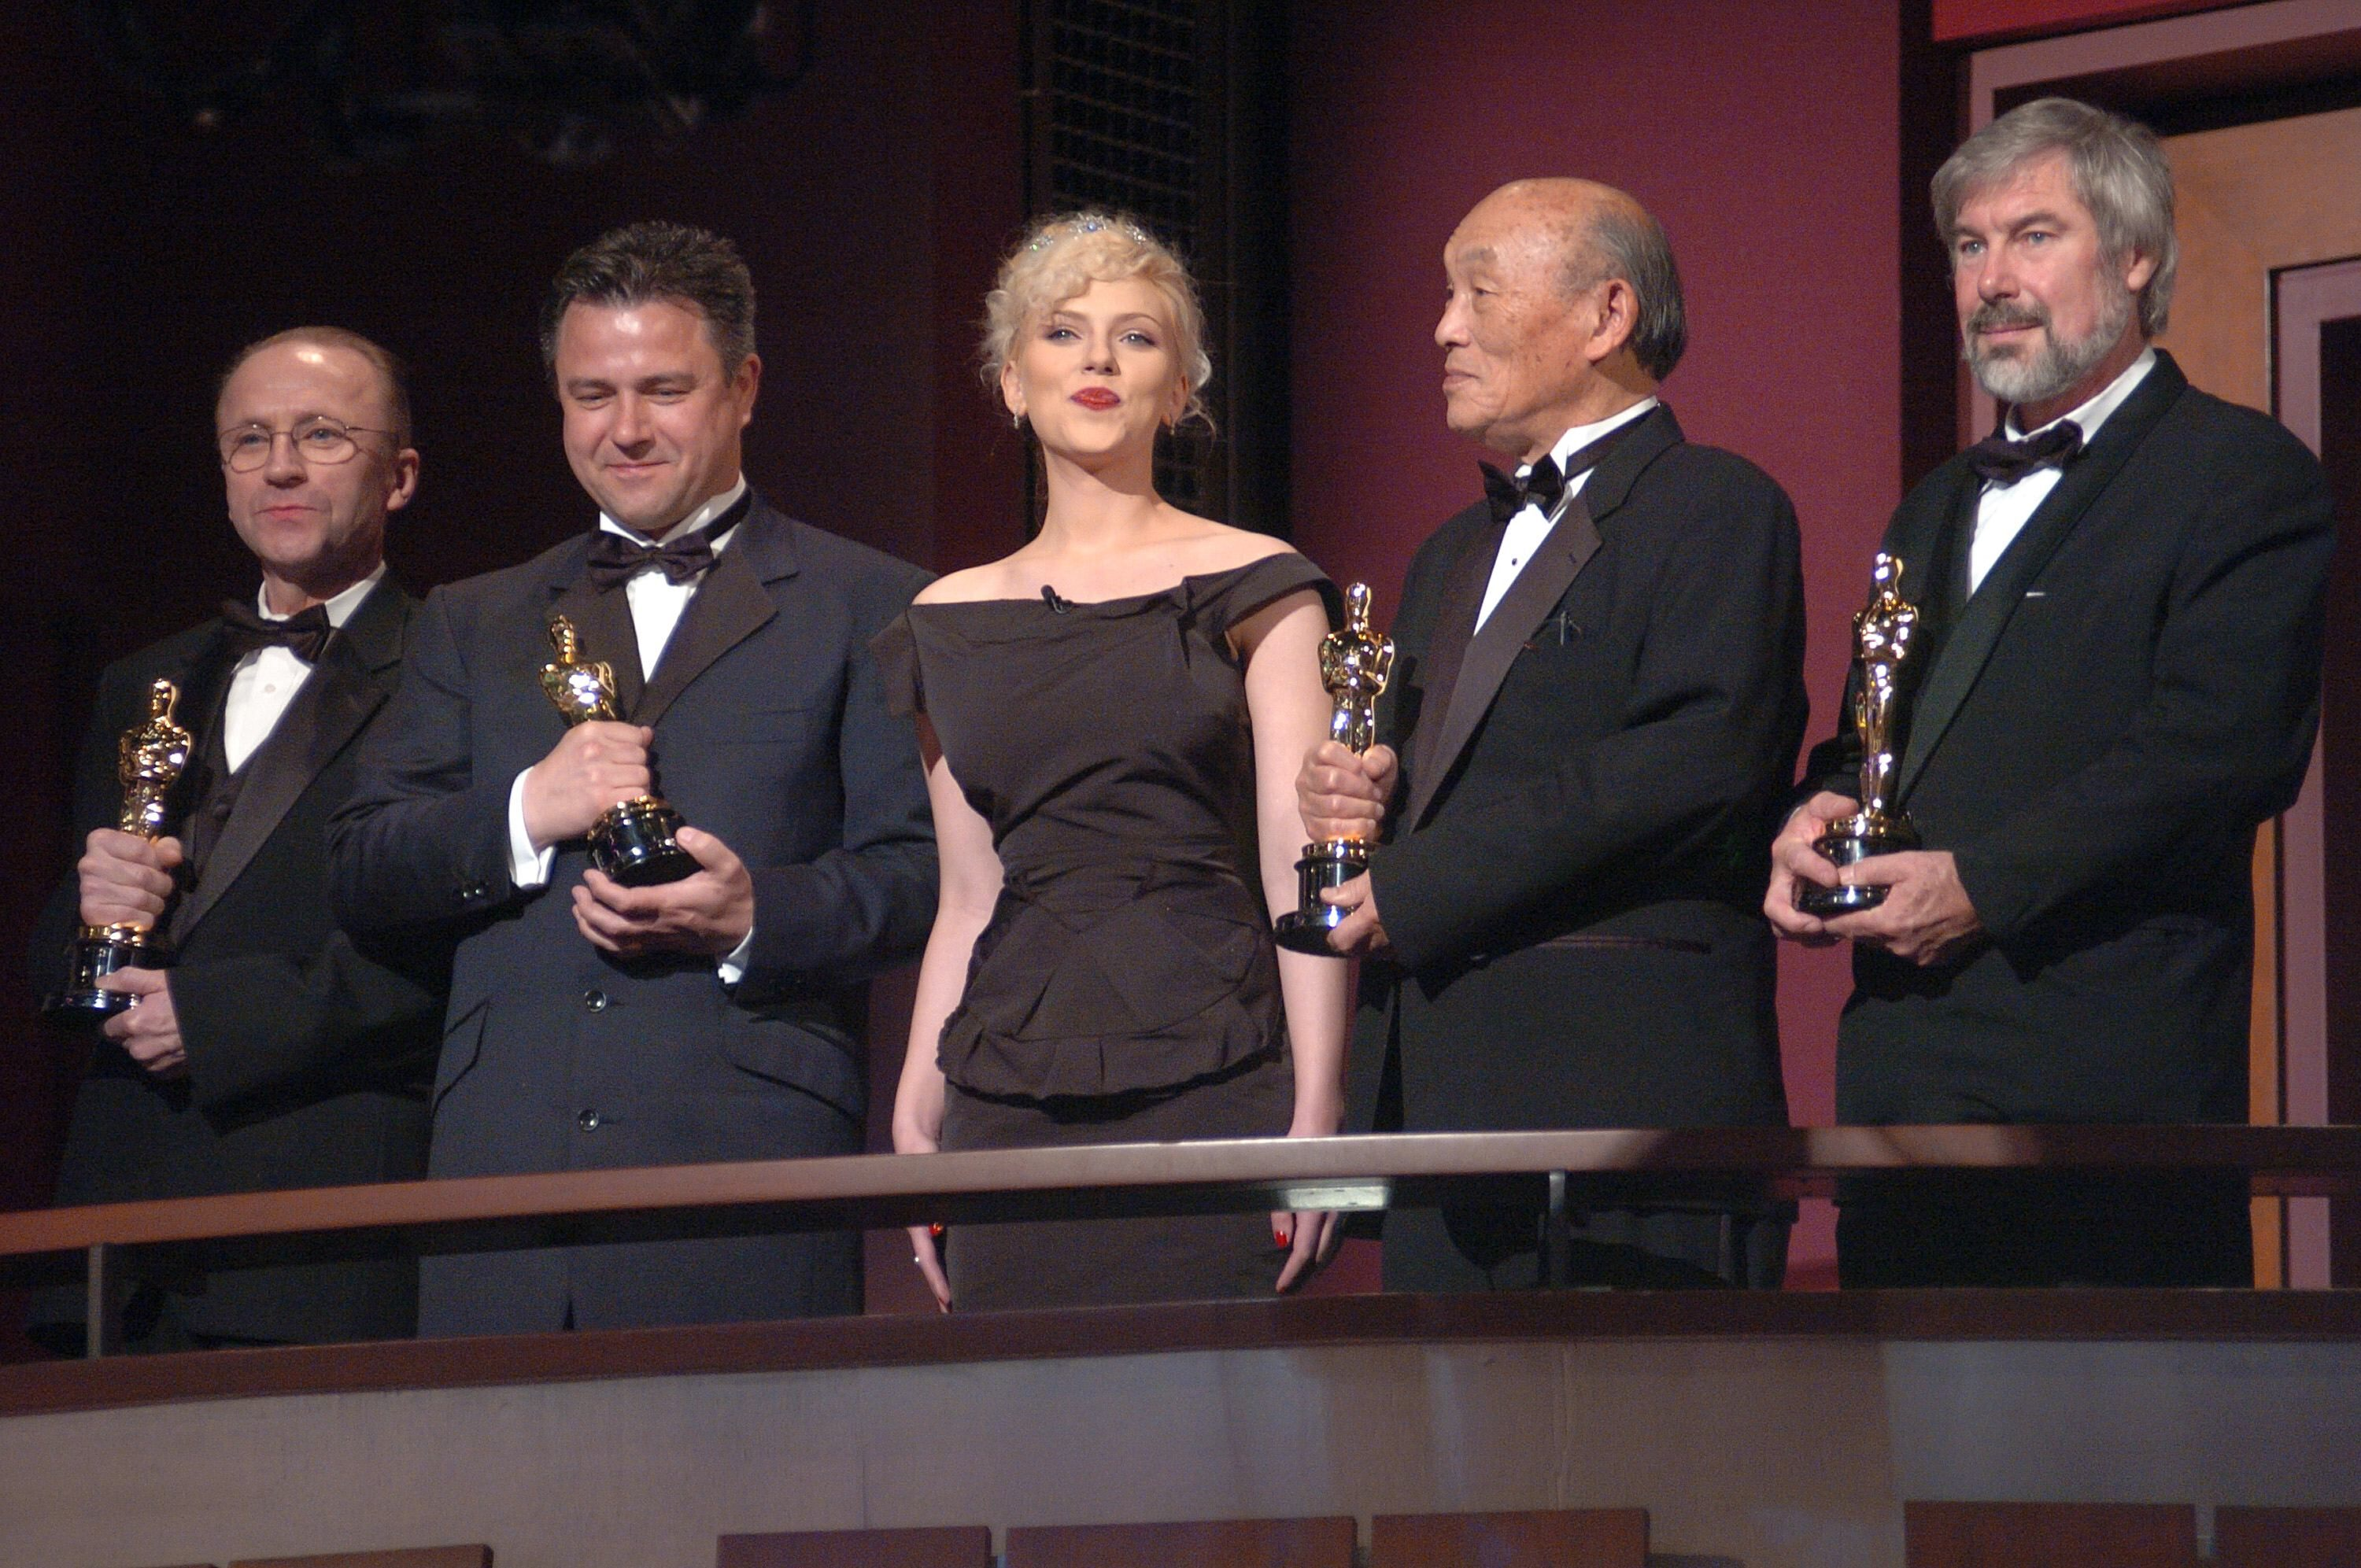 Scarlett Johansson introduces the winners of the Academy Awards for Scientific and Technical Achievement.